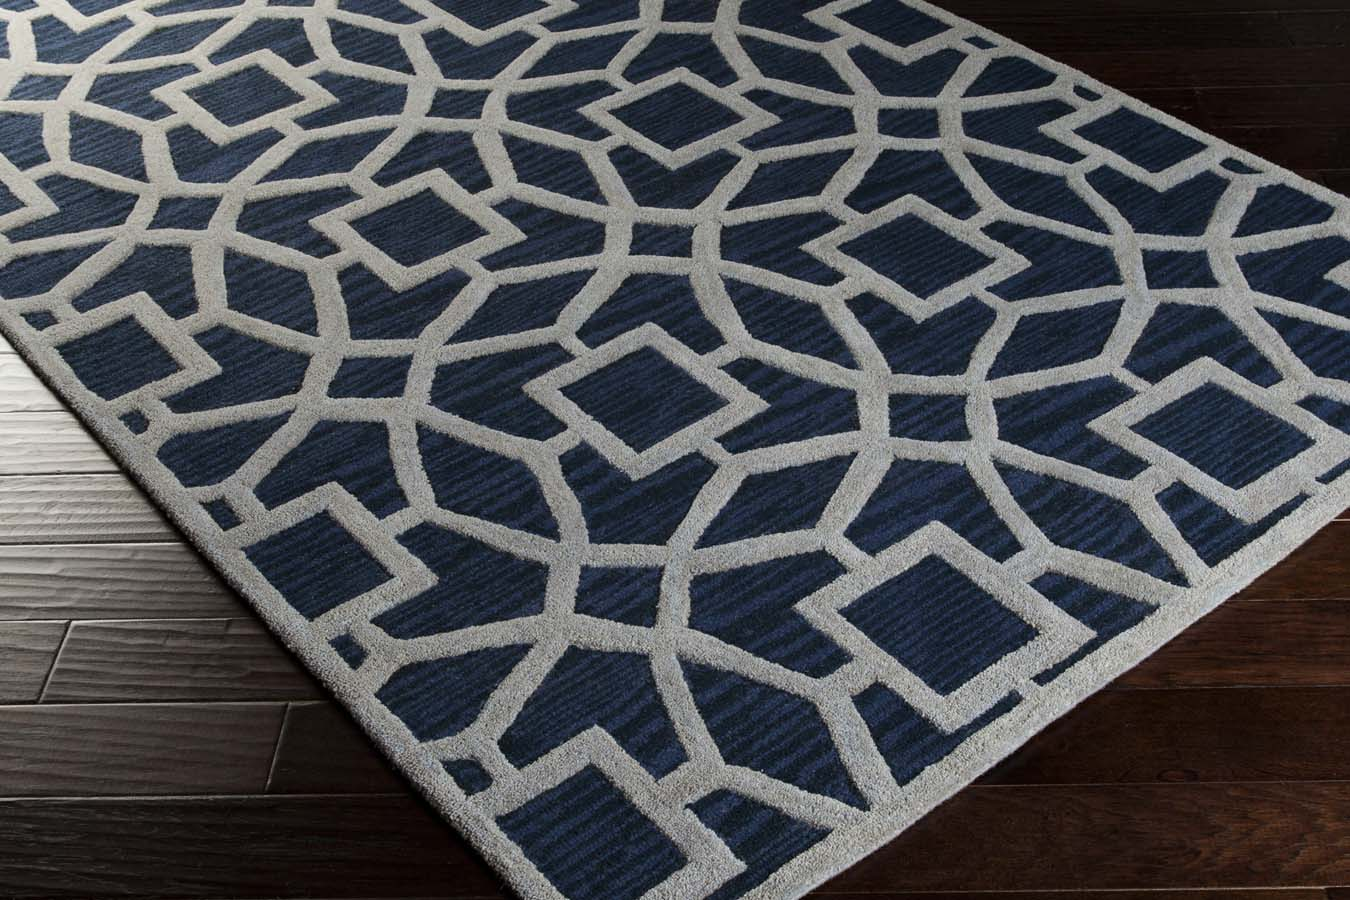 Surya Dream DST-1169 Rug